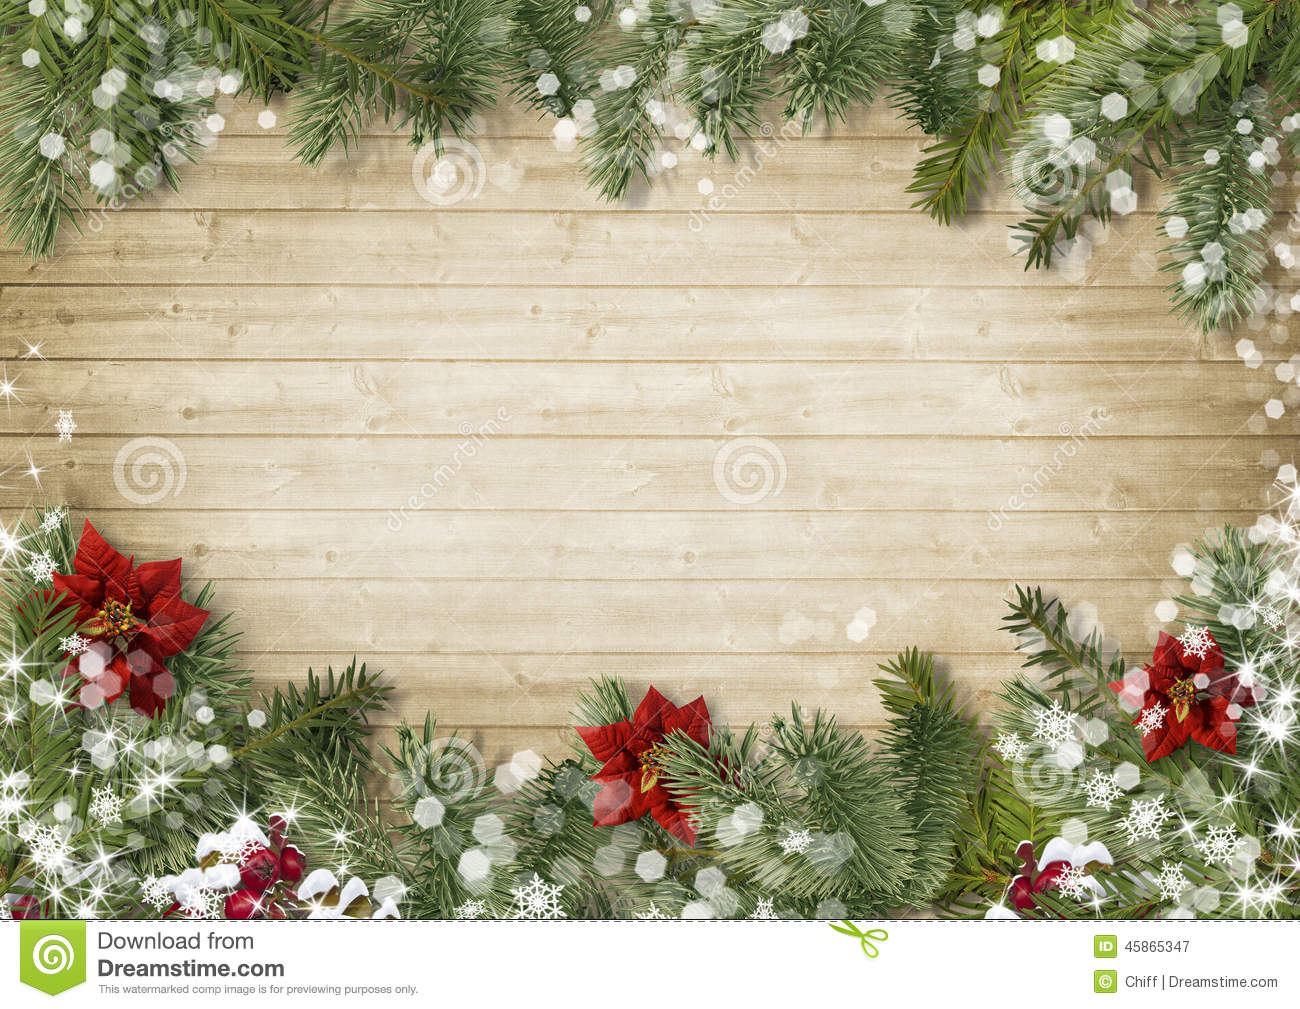 Christmas border with poinsettia onold wood background